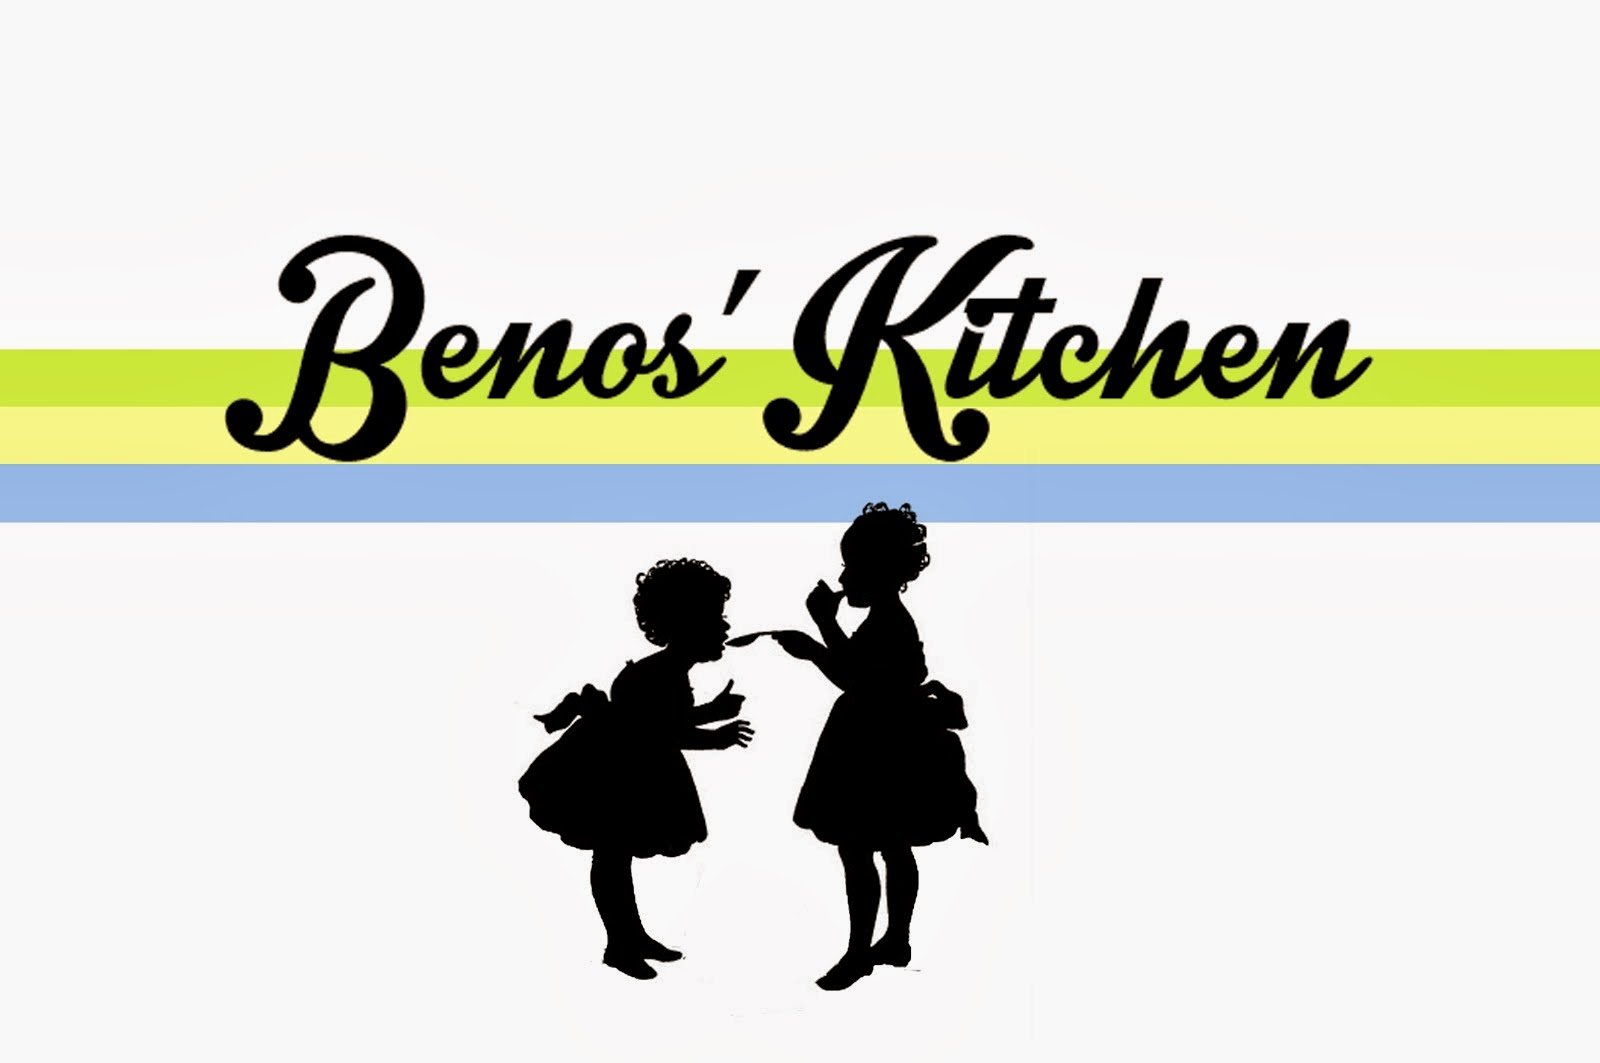 Benos' Kitchen